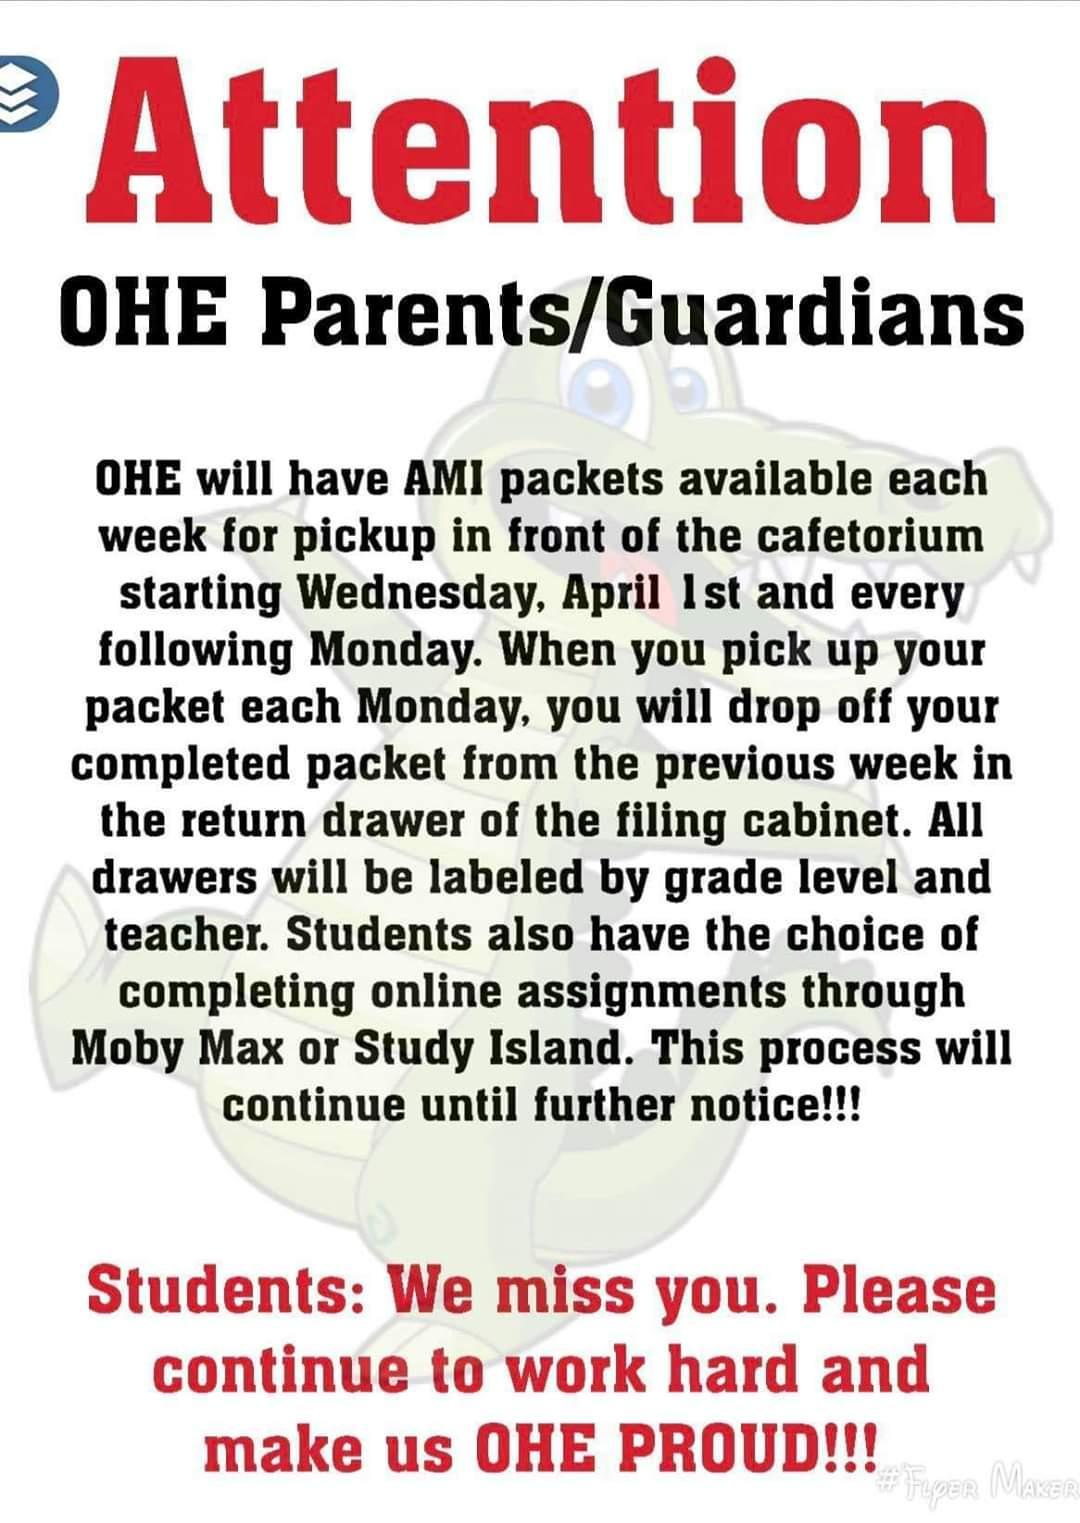 OHE AMI packet information